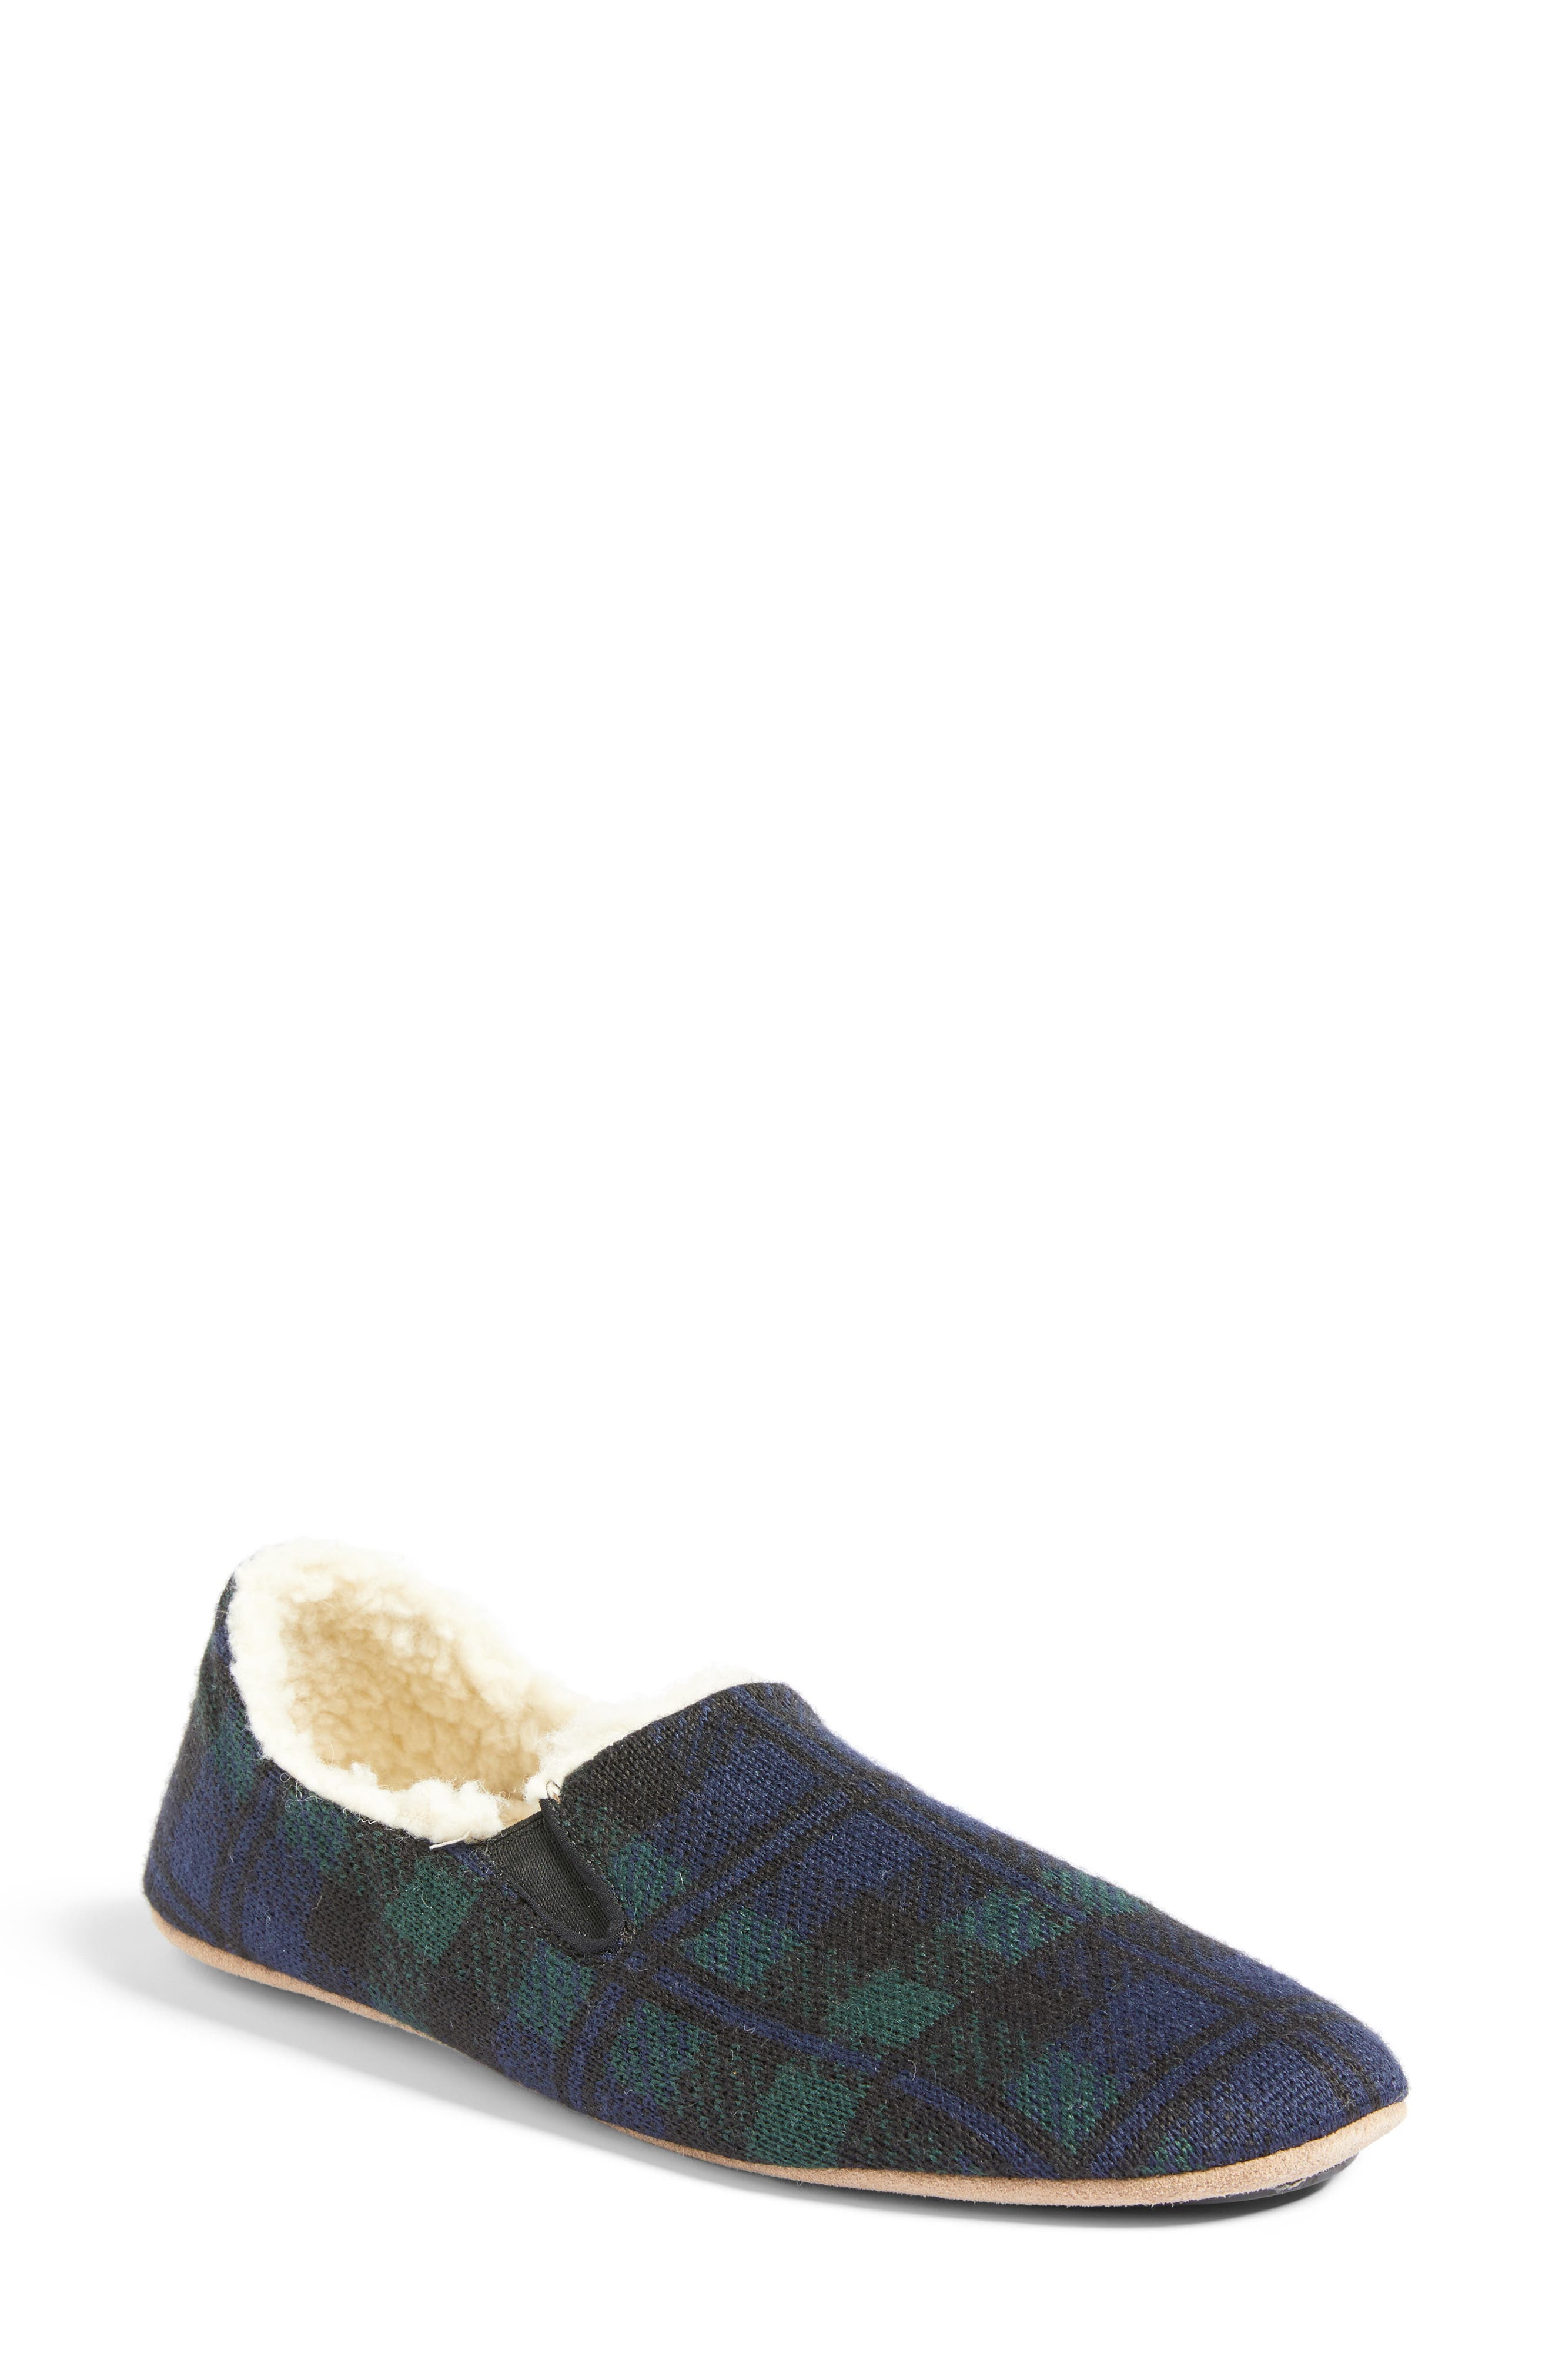 Black Watch Plaid Nomad Slippers,                             Main thumbnail 1, color,